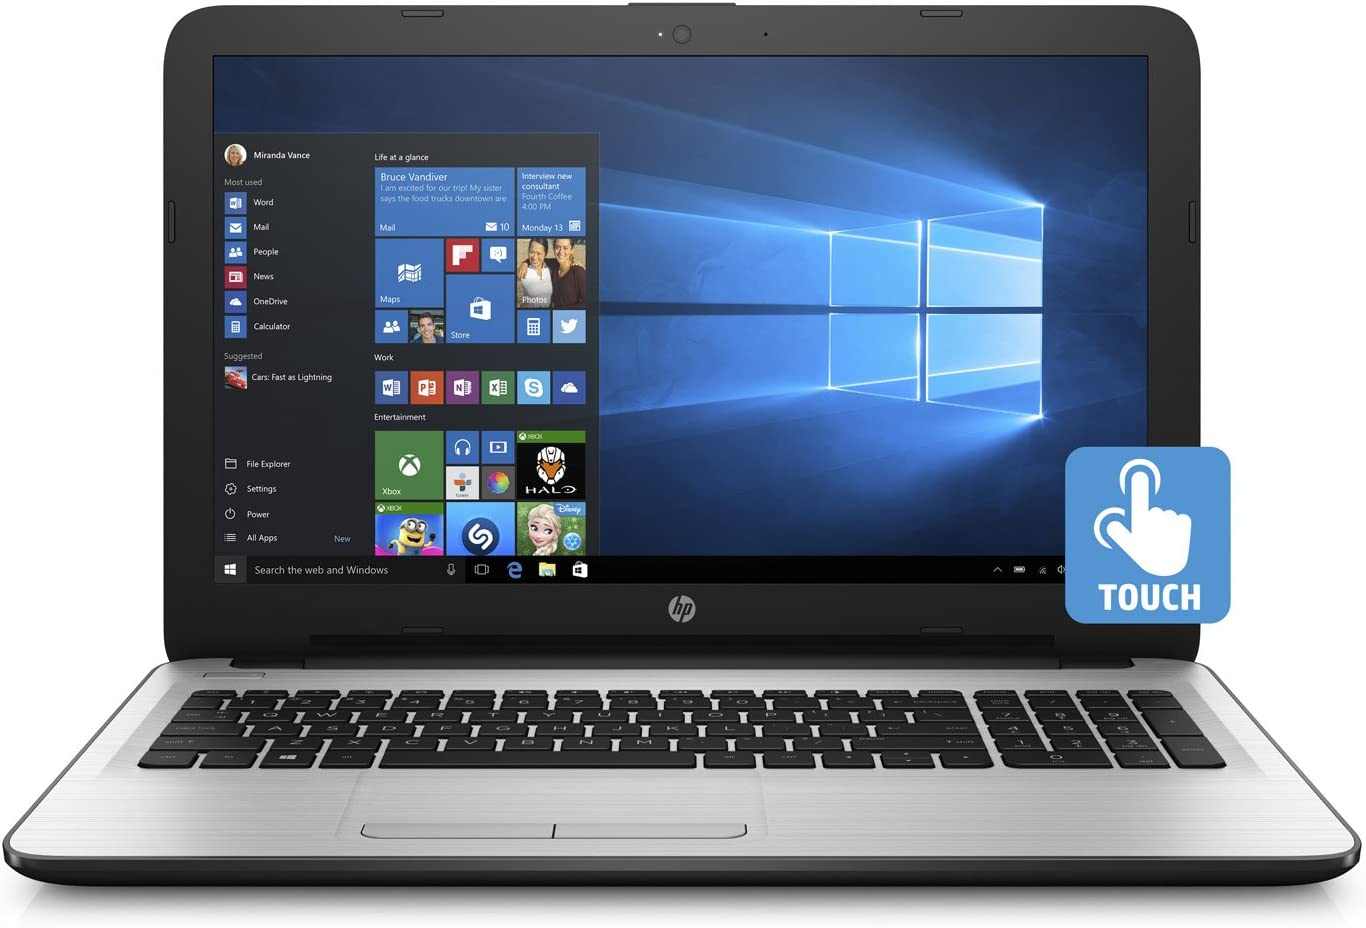 Hp 15 6 Touchscreen Notebook Amd A6 7310 Apu 6gb Ram 1tb Hdd Amd Radeon R4 Graphics Windows 10 Home White Amazon Ca Computers Tablets